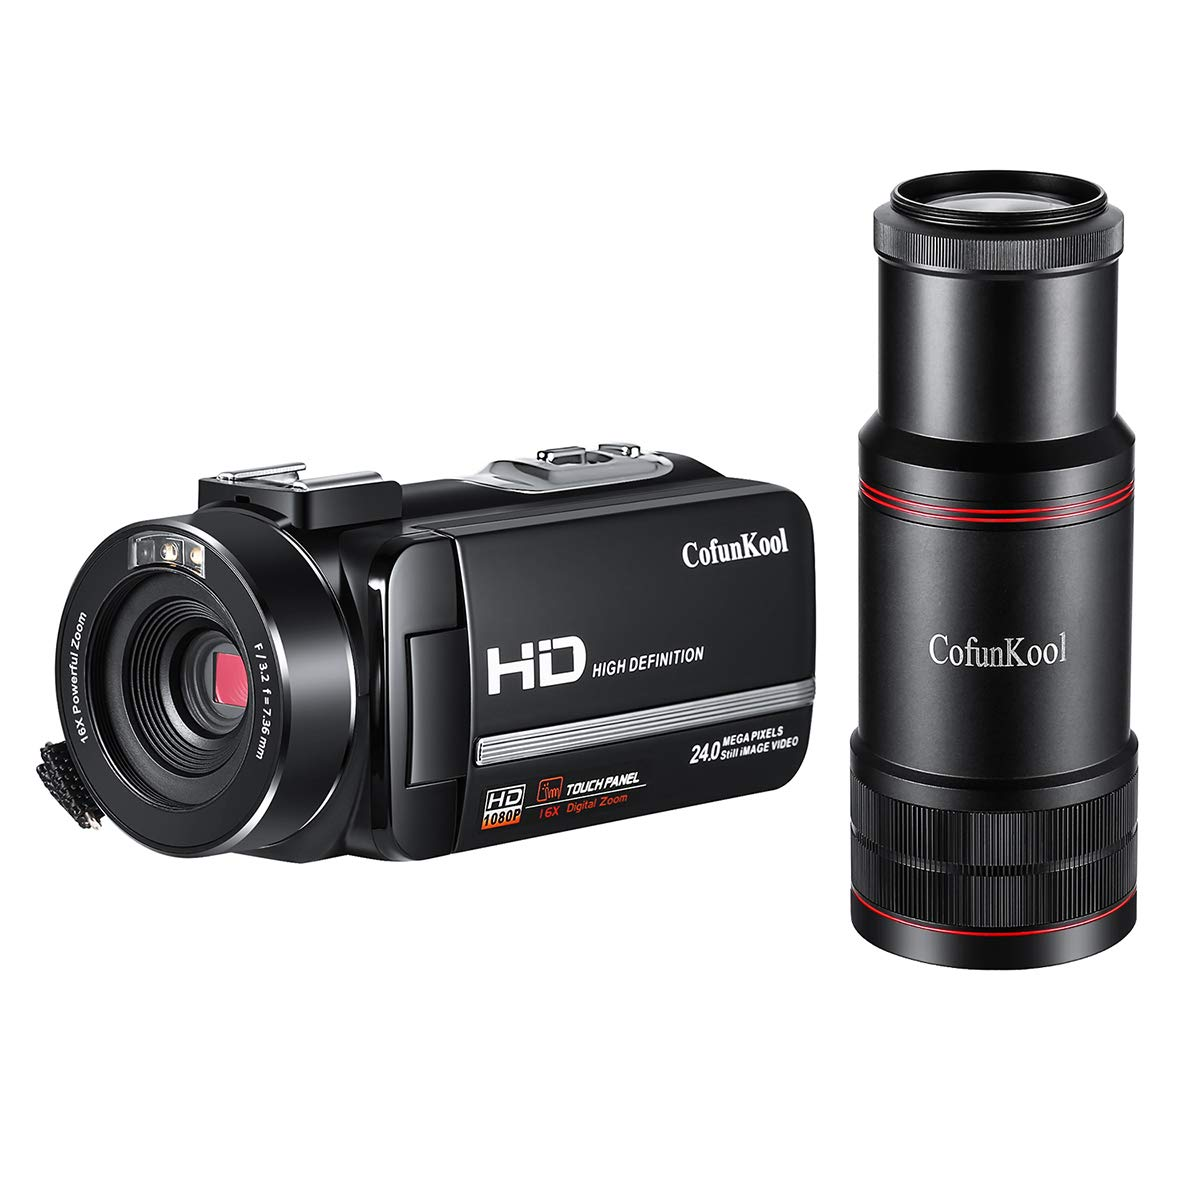 CofunKool Camcorder Video Camera Recorder 16X Digital Zoom IR Night Vision with Monocular Remote Control Price: $129.99